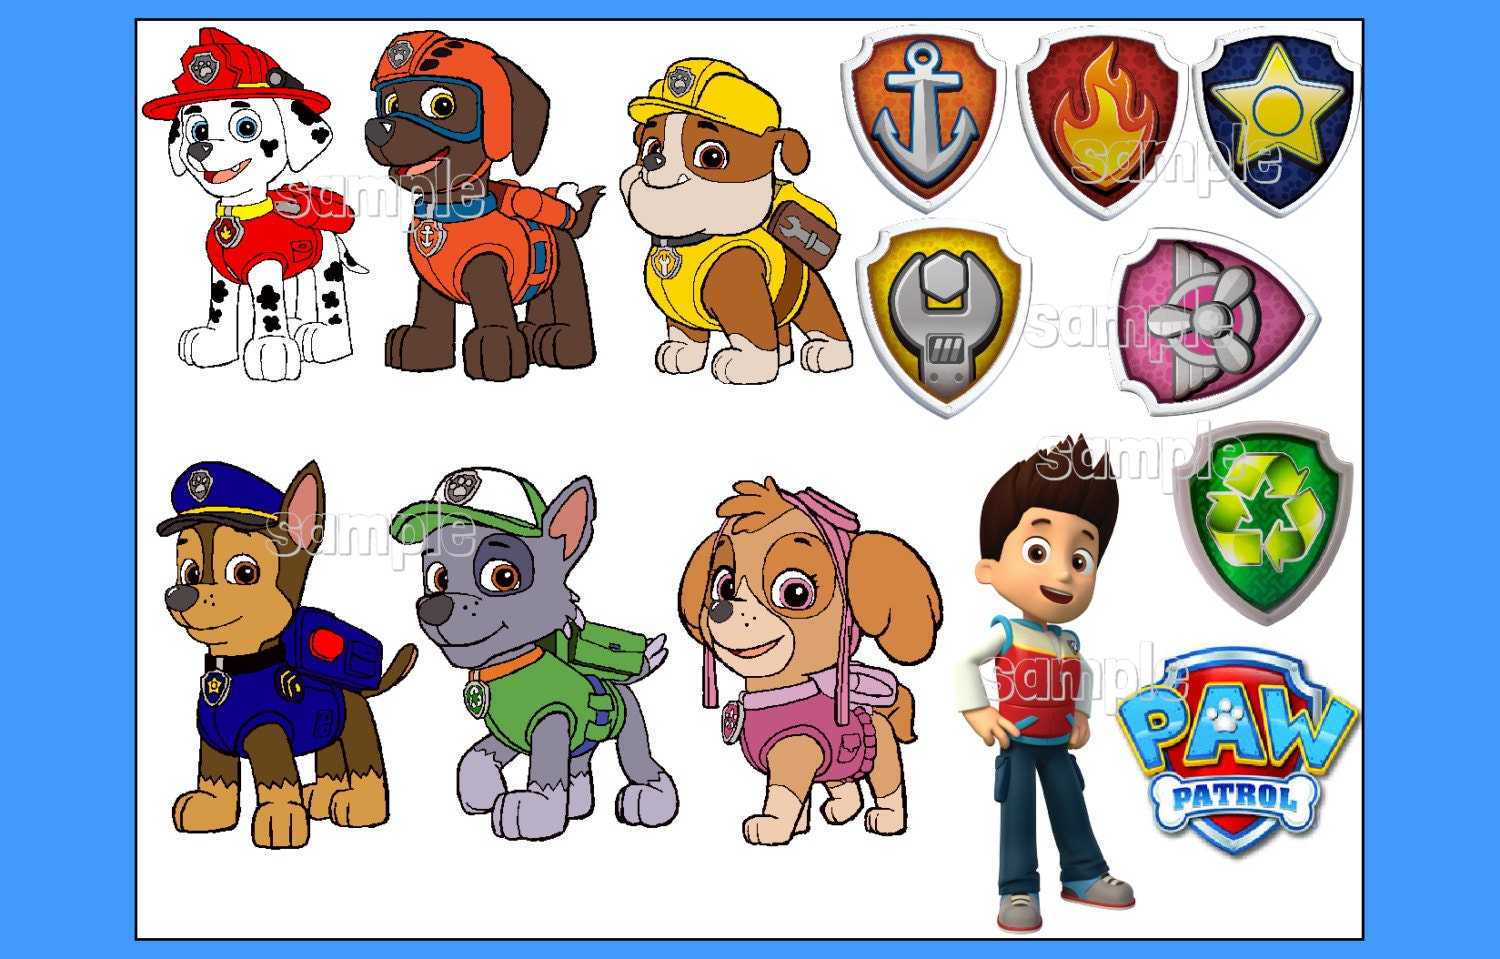 Gallery For gt Paw Patrol Characters Names